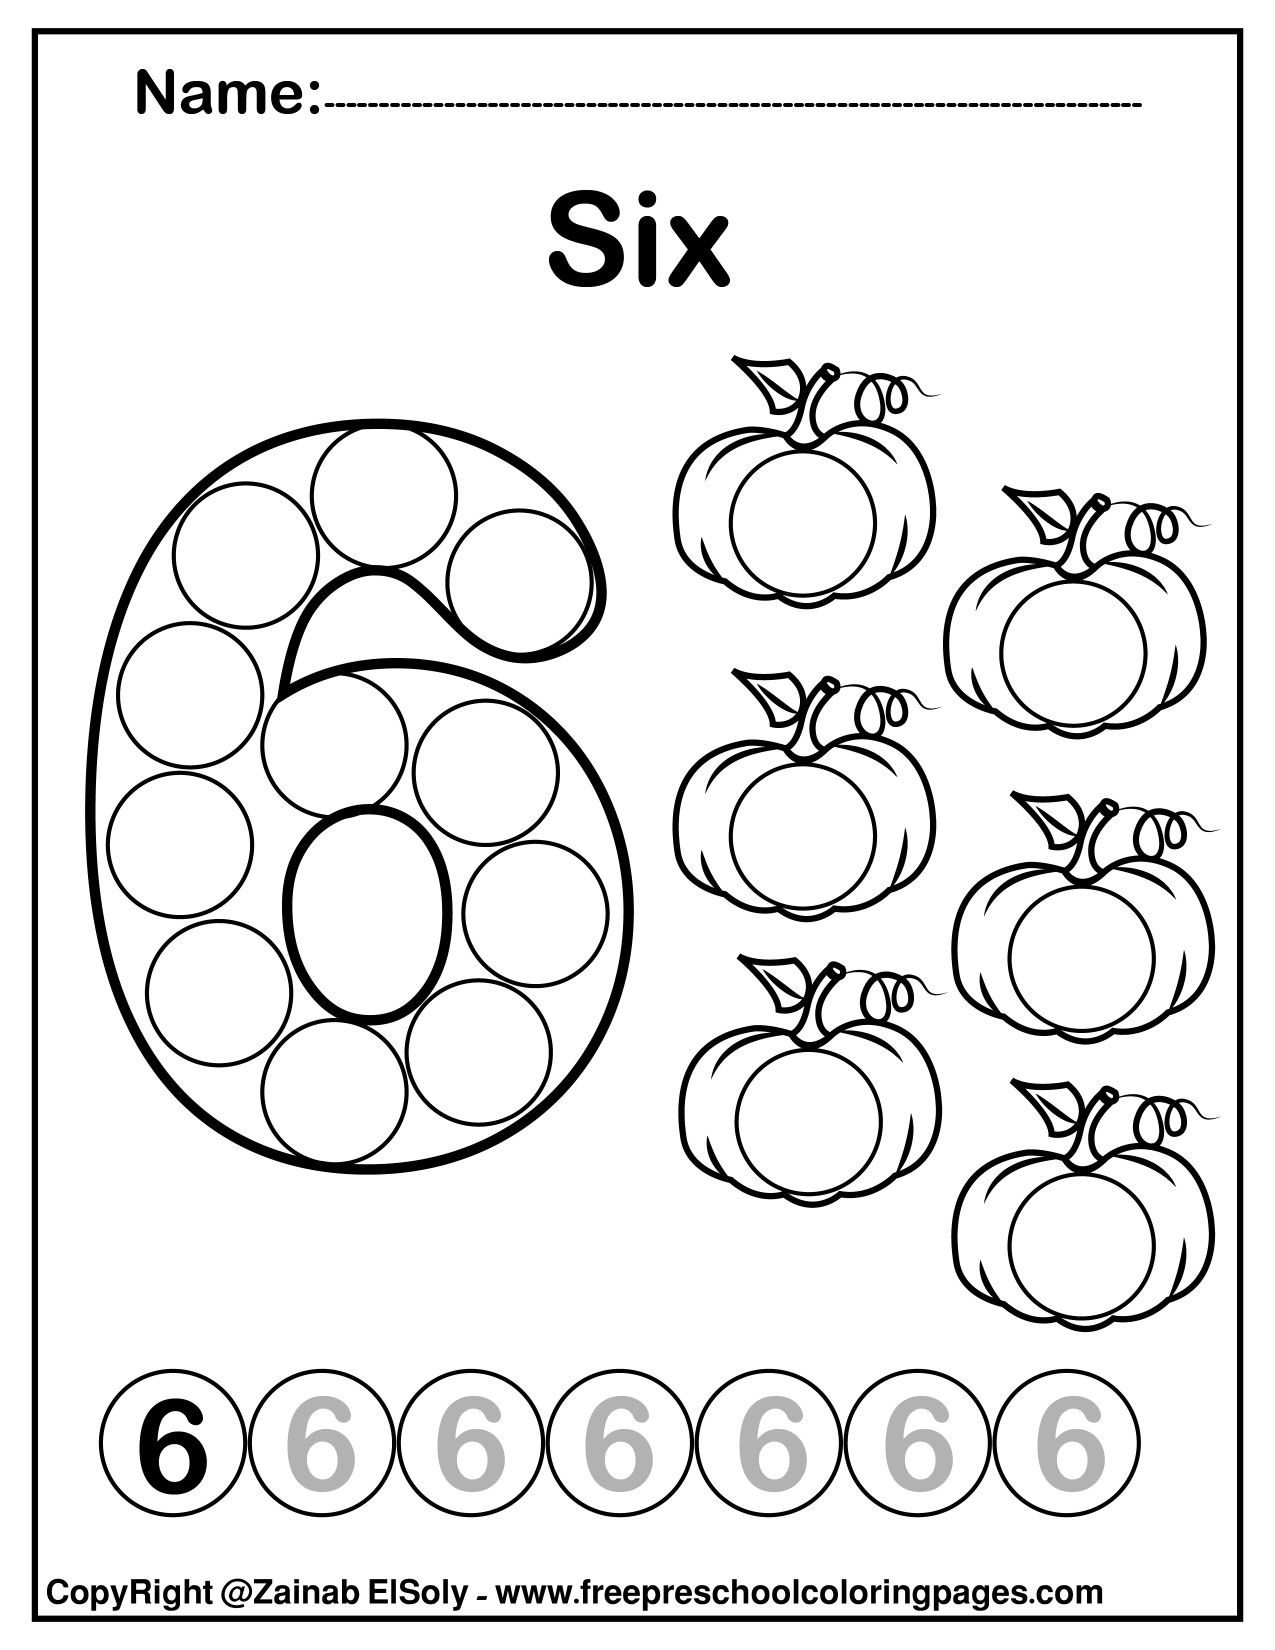 Number 6 Six Do A Dot Marker Activity Activity Pumpkins